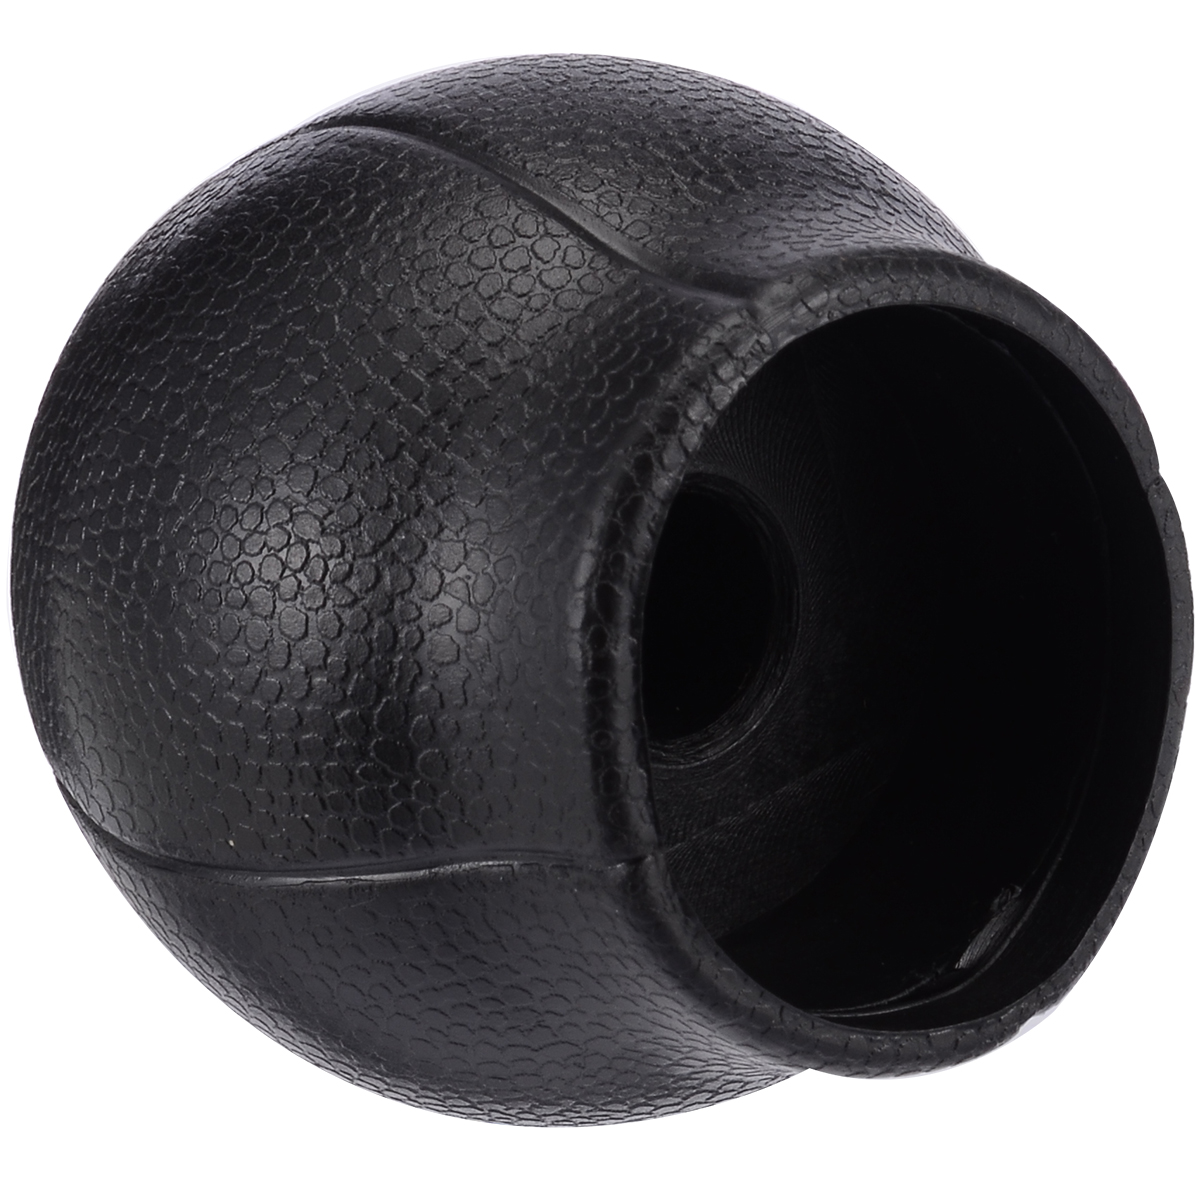 NEW 5 Speed Gear Stick Shift Knob 5 1 x 5 2cm Gear Stick Shift Knob For Opel Vauxhall Corsa A Vectra B Astra F G in Gear Shift Knob from Automobiles Motorcycles